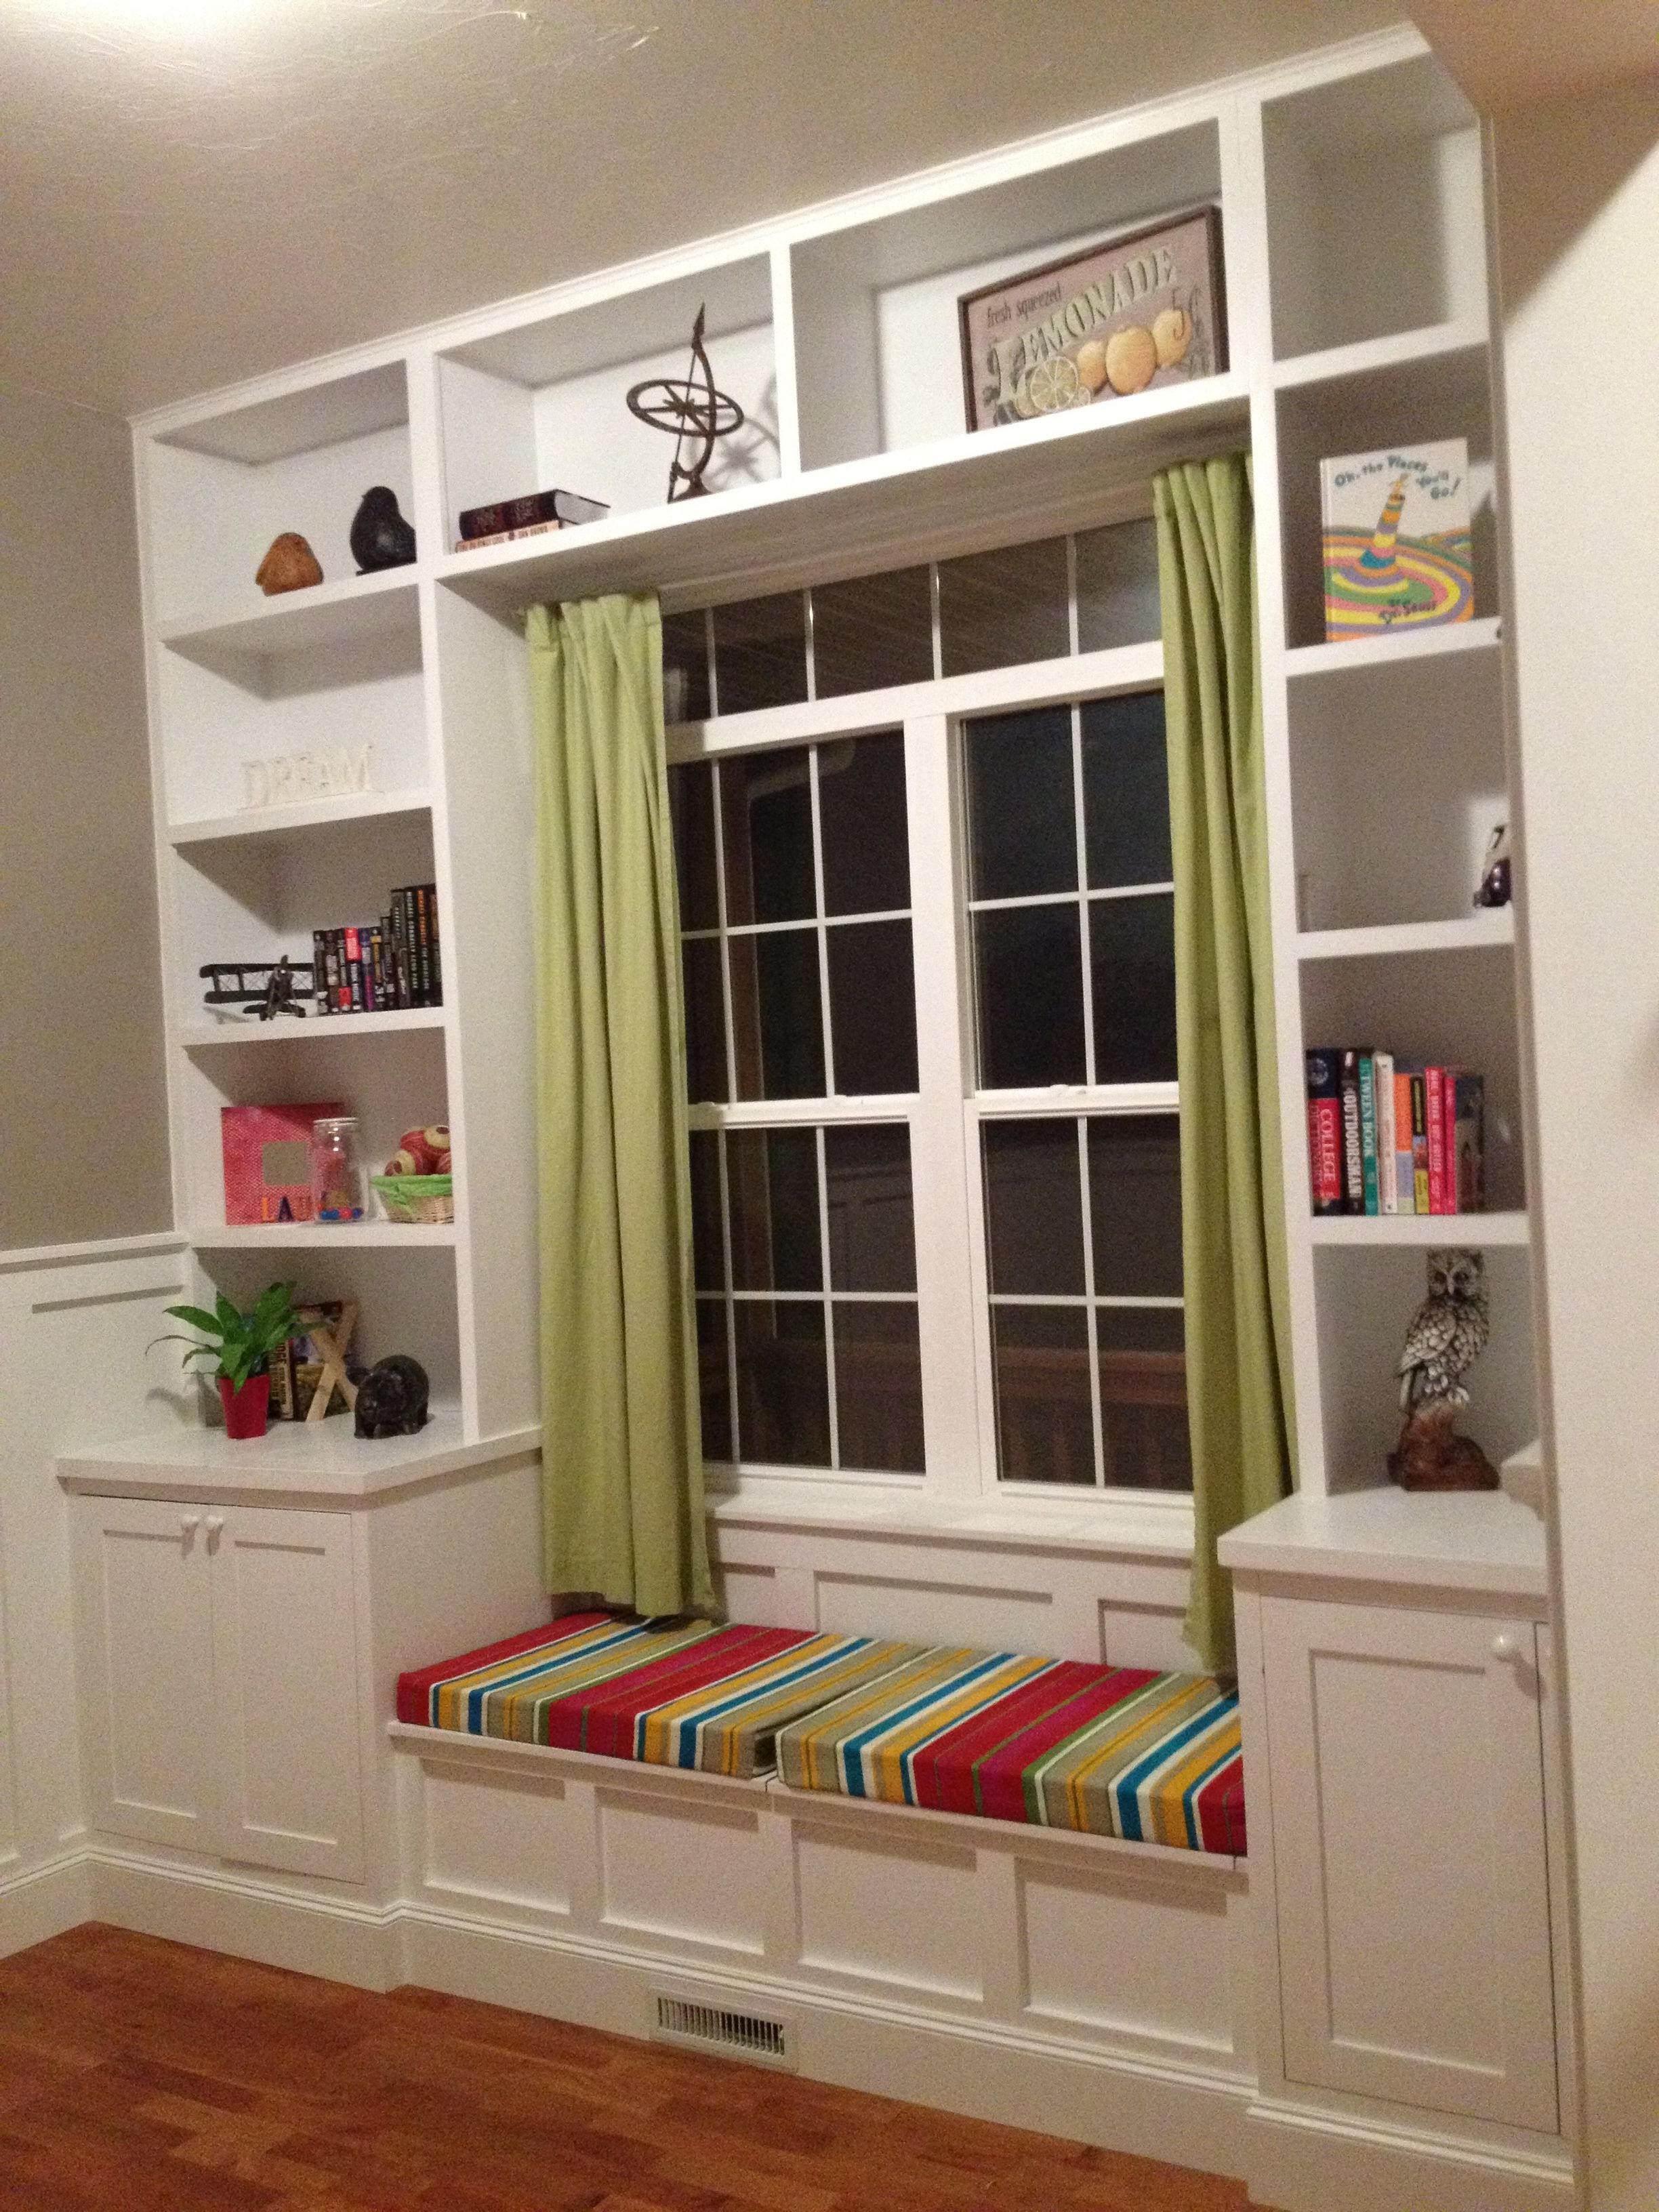 daydreaming storage. Built In Bookshelves Around The Window With A Seat For Daydreaming. I Had These Custom Daydreaming Storage